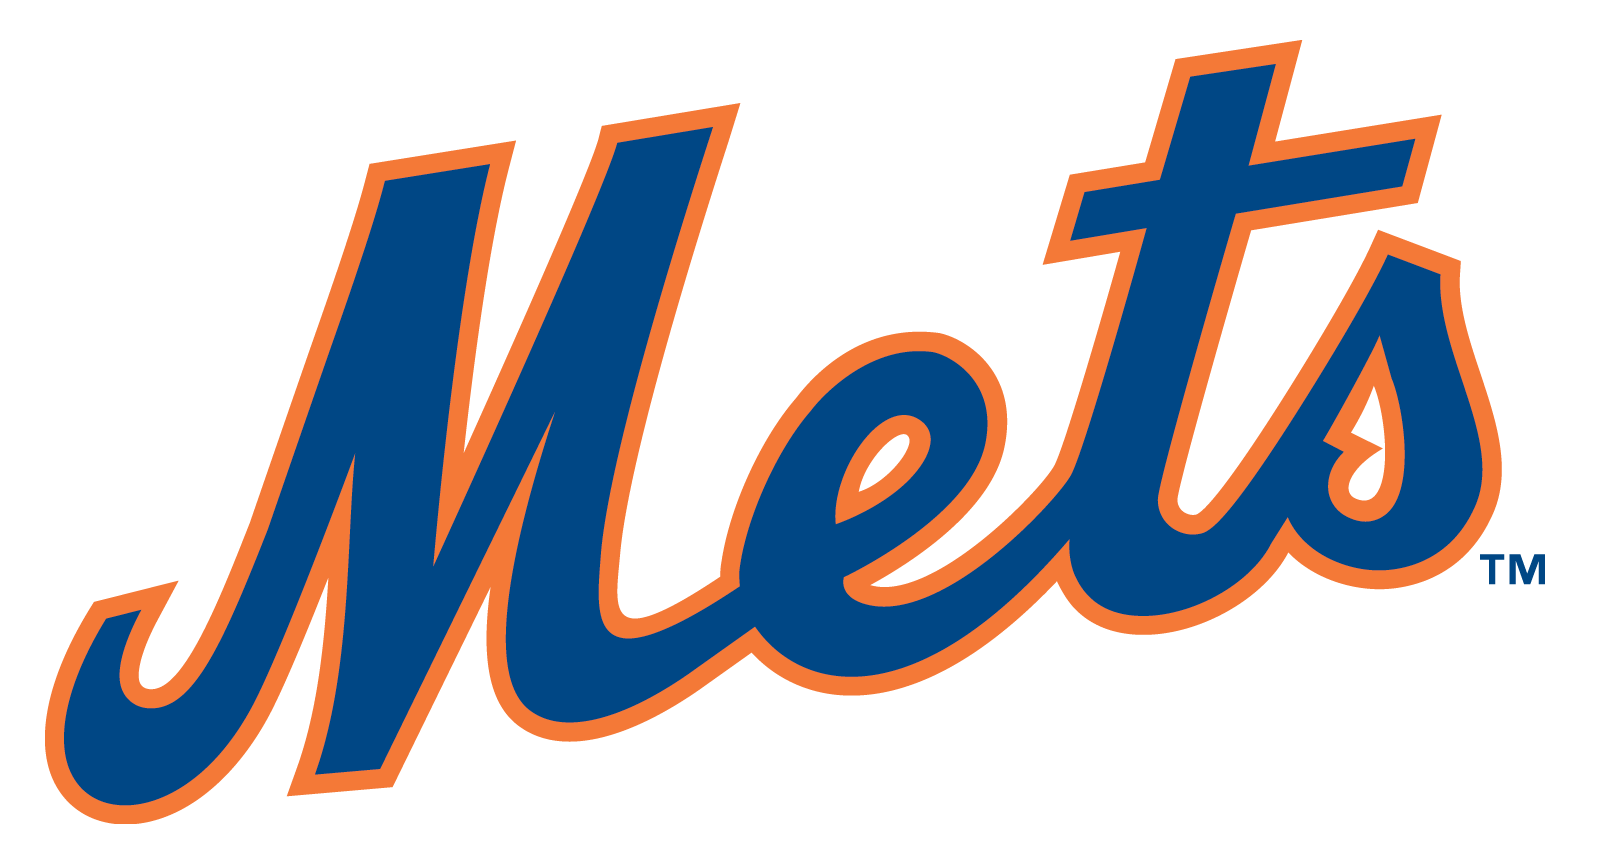 New York Mets.